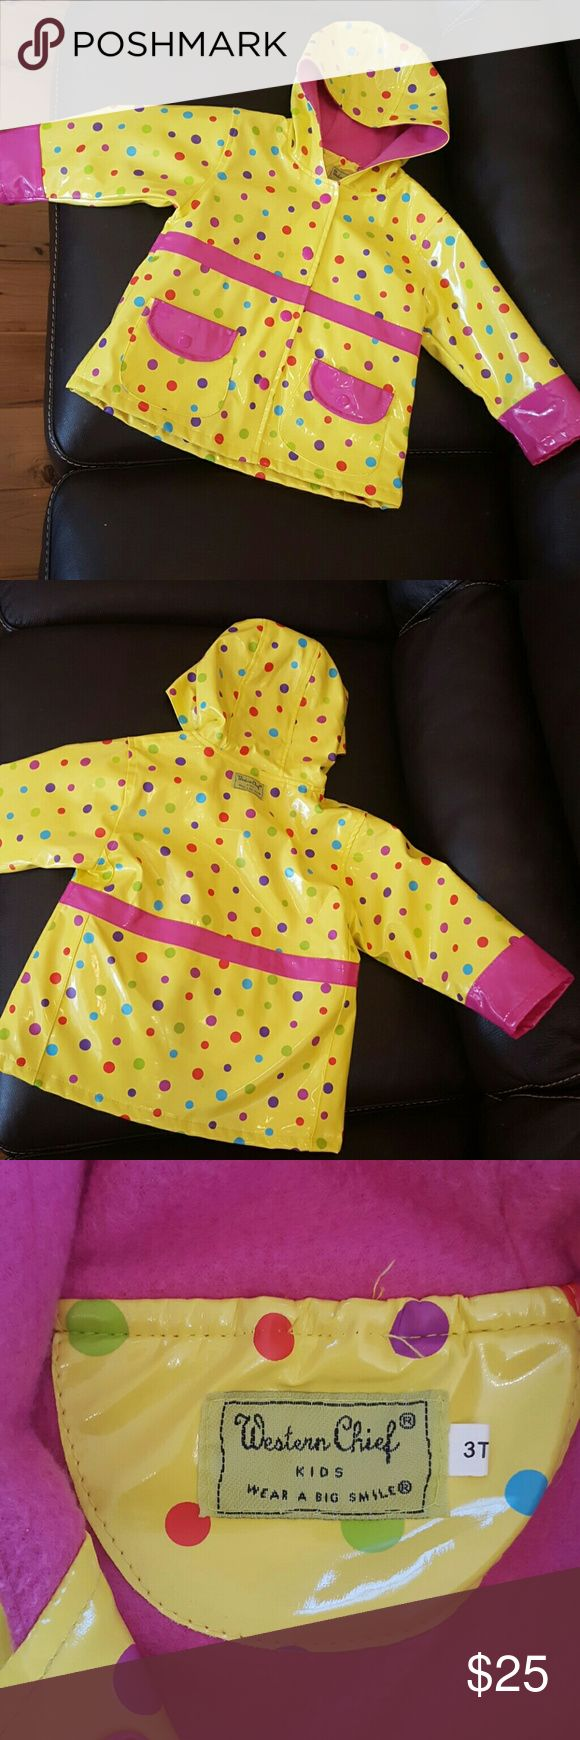 "Western Chief toddler rain jacket Yellow polka dot kids rain coat. Fleece lined and totally adorable!   There is one little scuff on the sleeve shown in the last picture. No more than 1/2"". Virtually brand new!  Thank you for checking out my listing, please visit the rest of my closet. Items added and prices reduced regularly!  Western Chief Jackets & Coats Raincoats #RaincoatsForWomenPolkaDots"